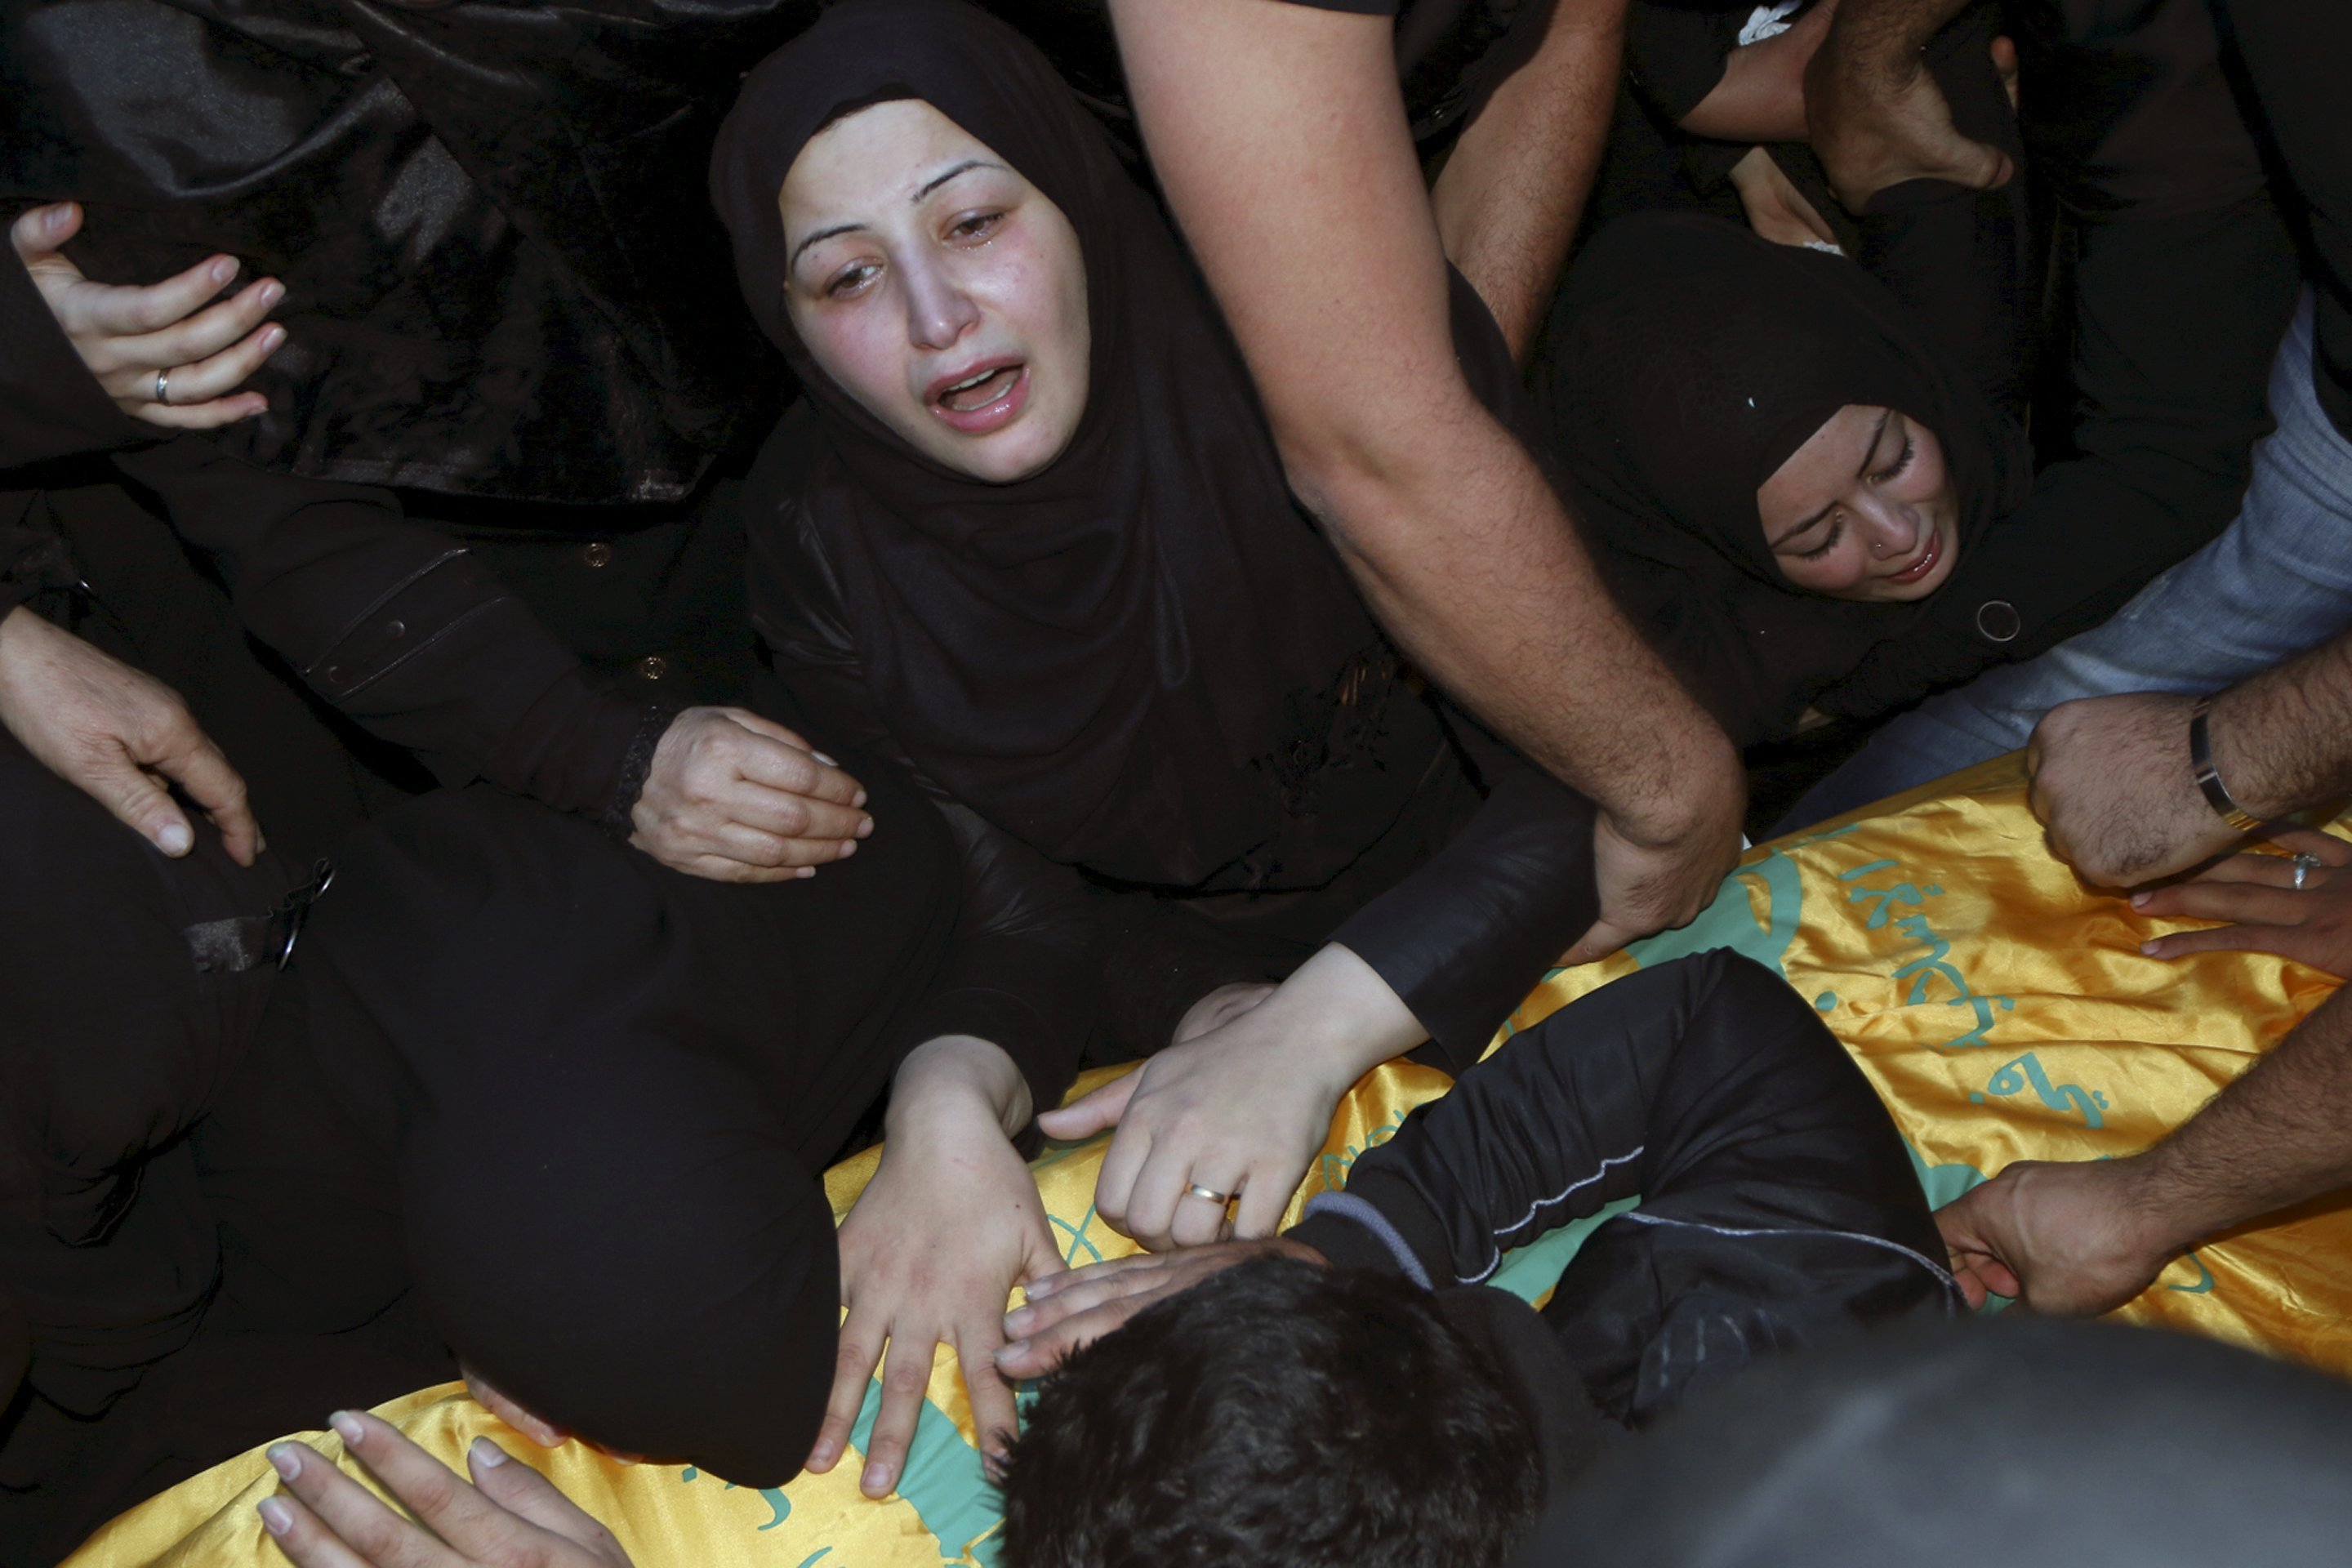 Relatives mourn over the coffin of Hezbollah member, Adel Akram Termos, who was killed in the two explosions that occurred on Thursday in Beirut's southern suburbs, during his funeral in Tallousa village, southern Lebanon on Nov. 13, 2015.